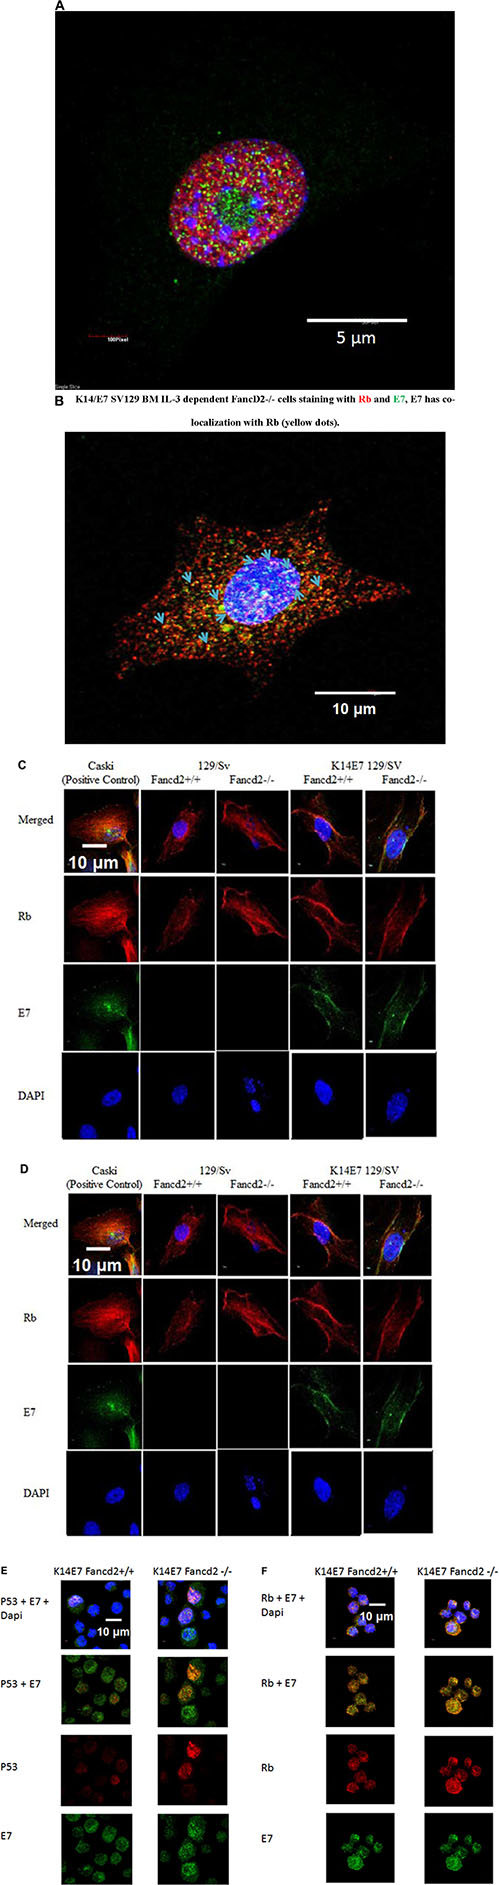 Detection of HPV E7 with p53 and Rb in the nucleus and cytoplasm of K14E7 Fancd2−/− stromal and hematopoietic cell lines.